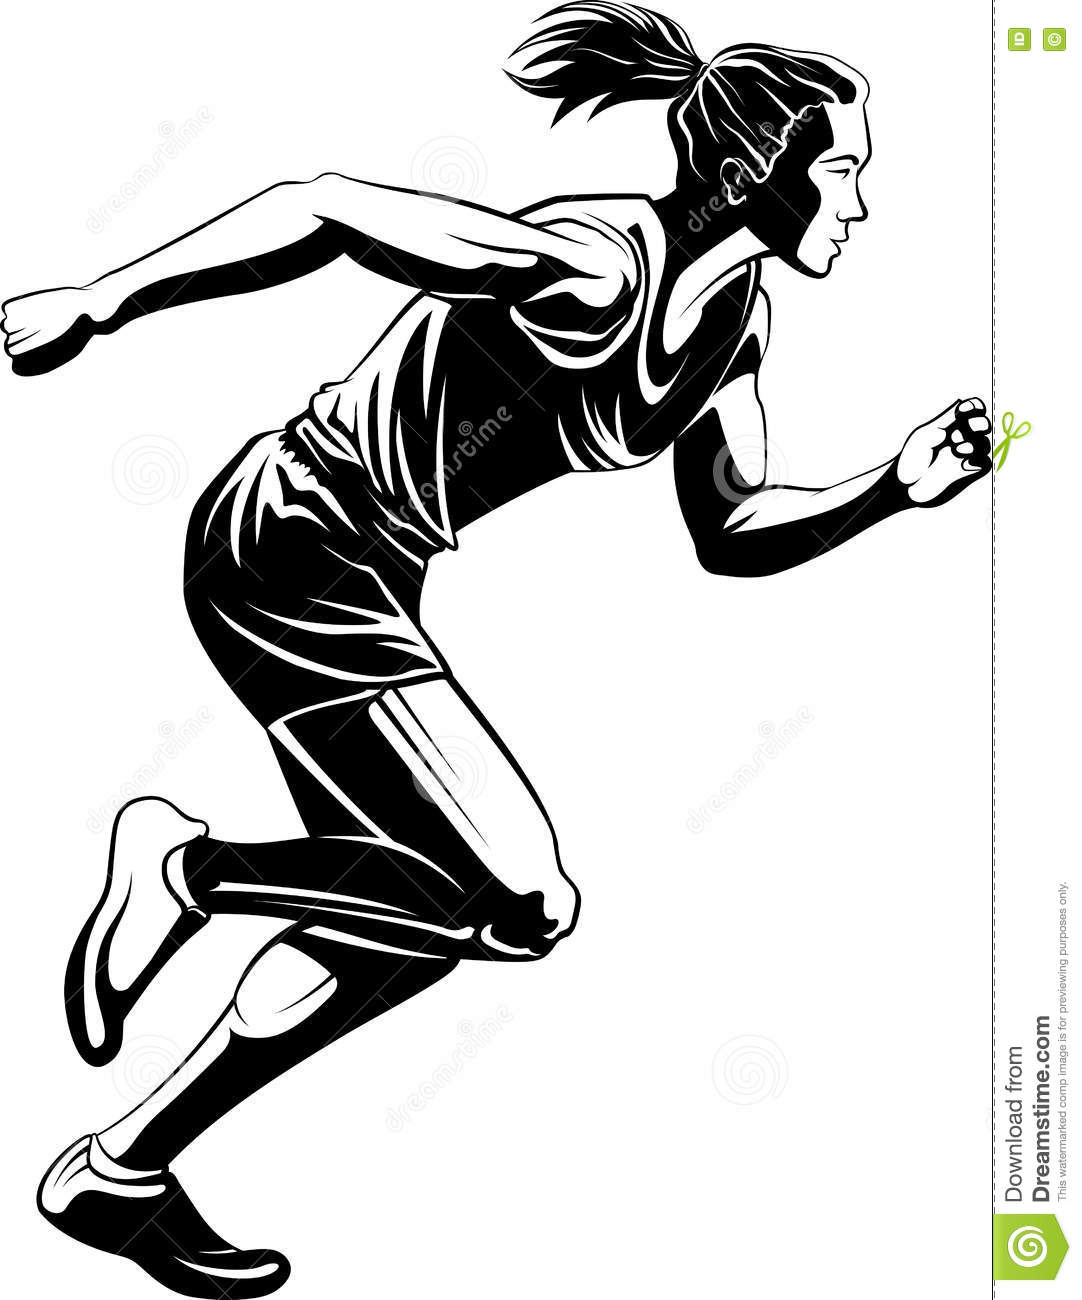 Female Runner Silhouette Stock Vector Illustration Of